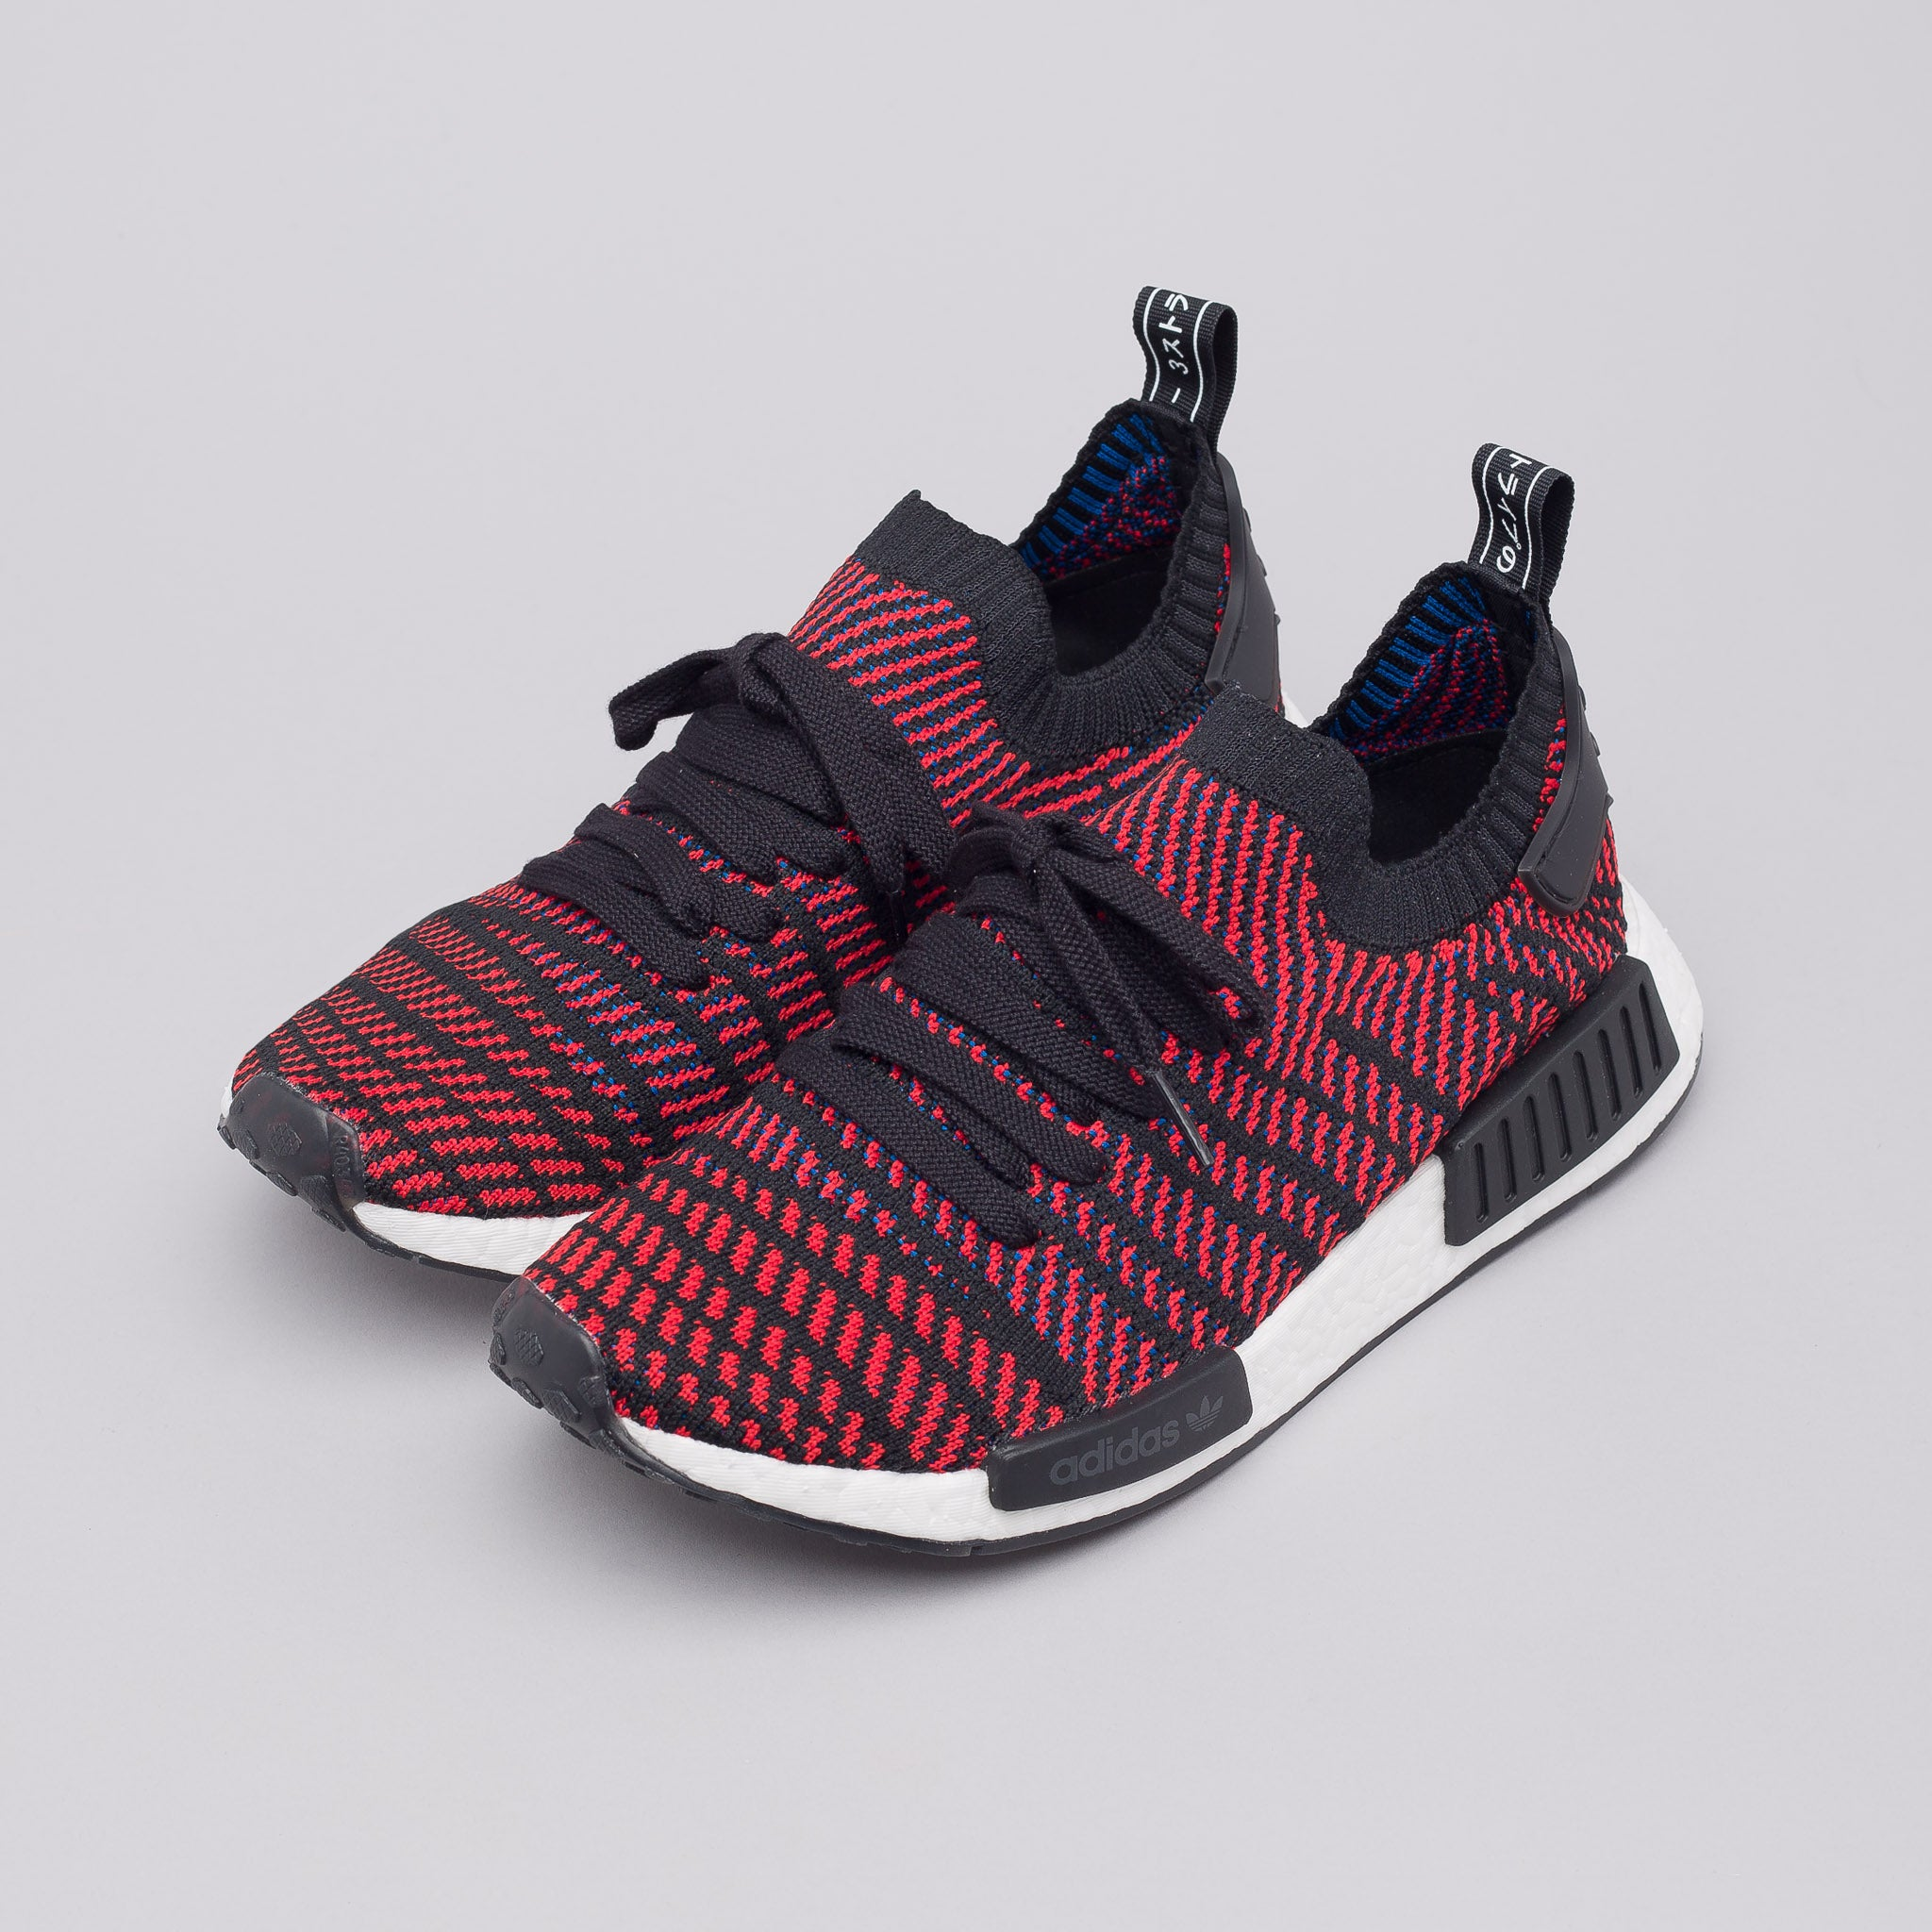 Buy Adidas Cheap NMD NMD R1 PK Boost Shoes for Sale